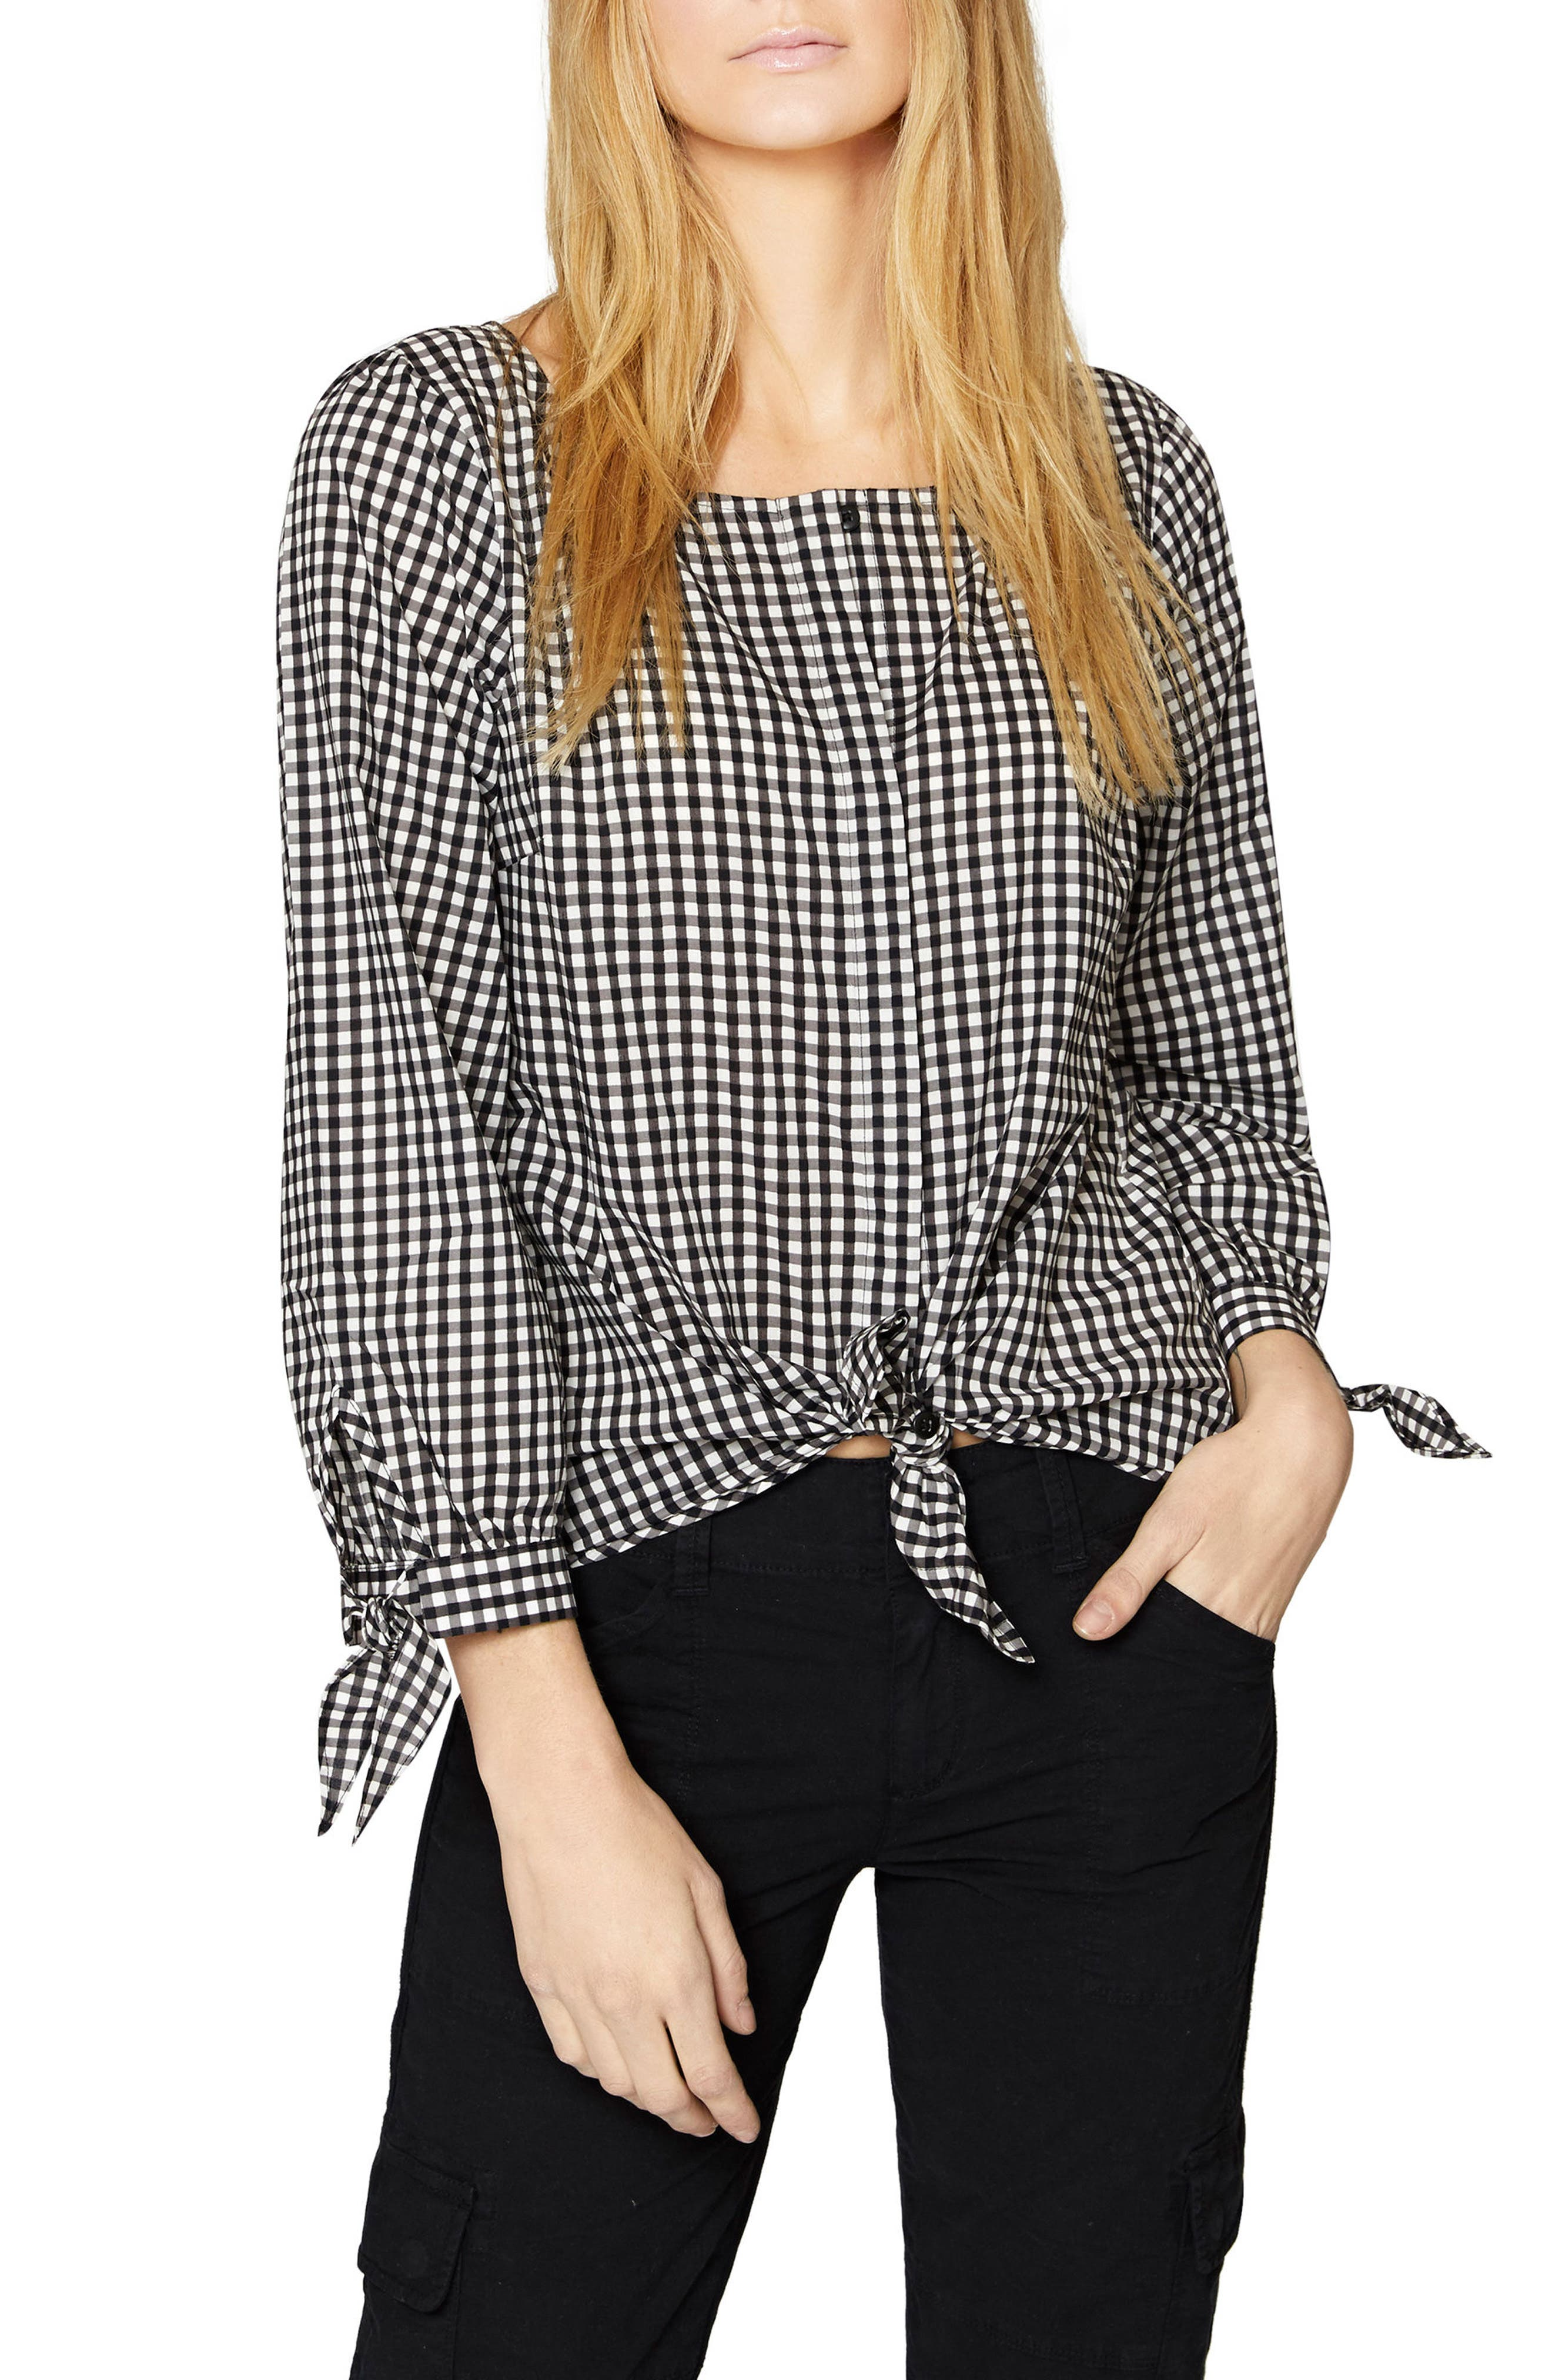 Madie Tie Sleeve Blouse,                             Main thumbnail 1, color,